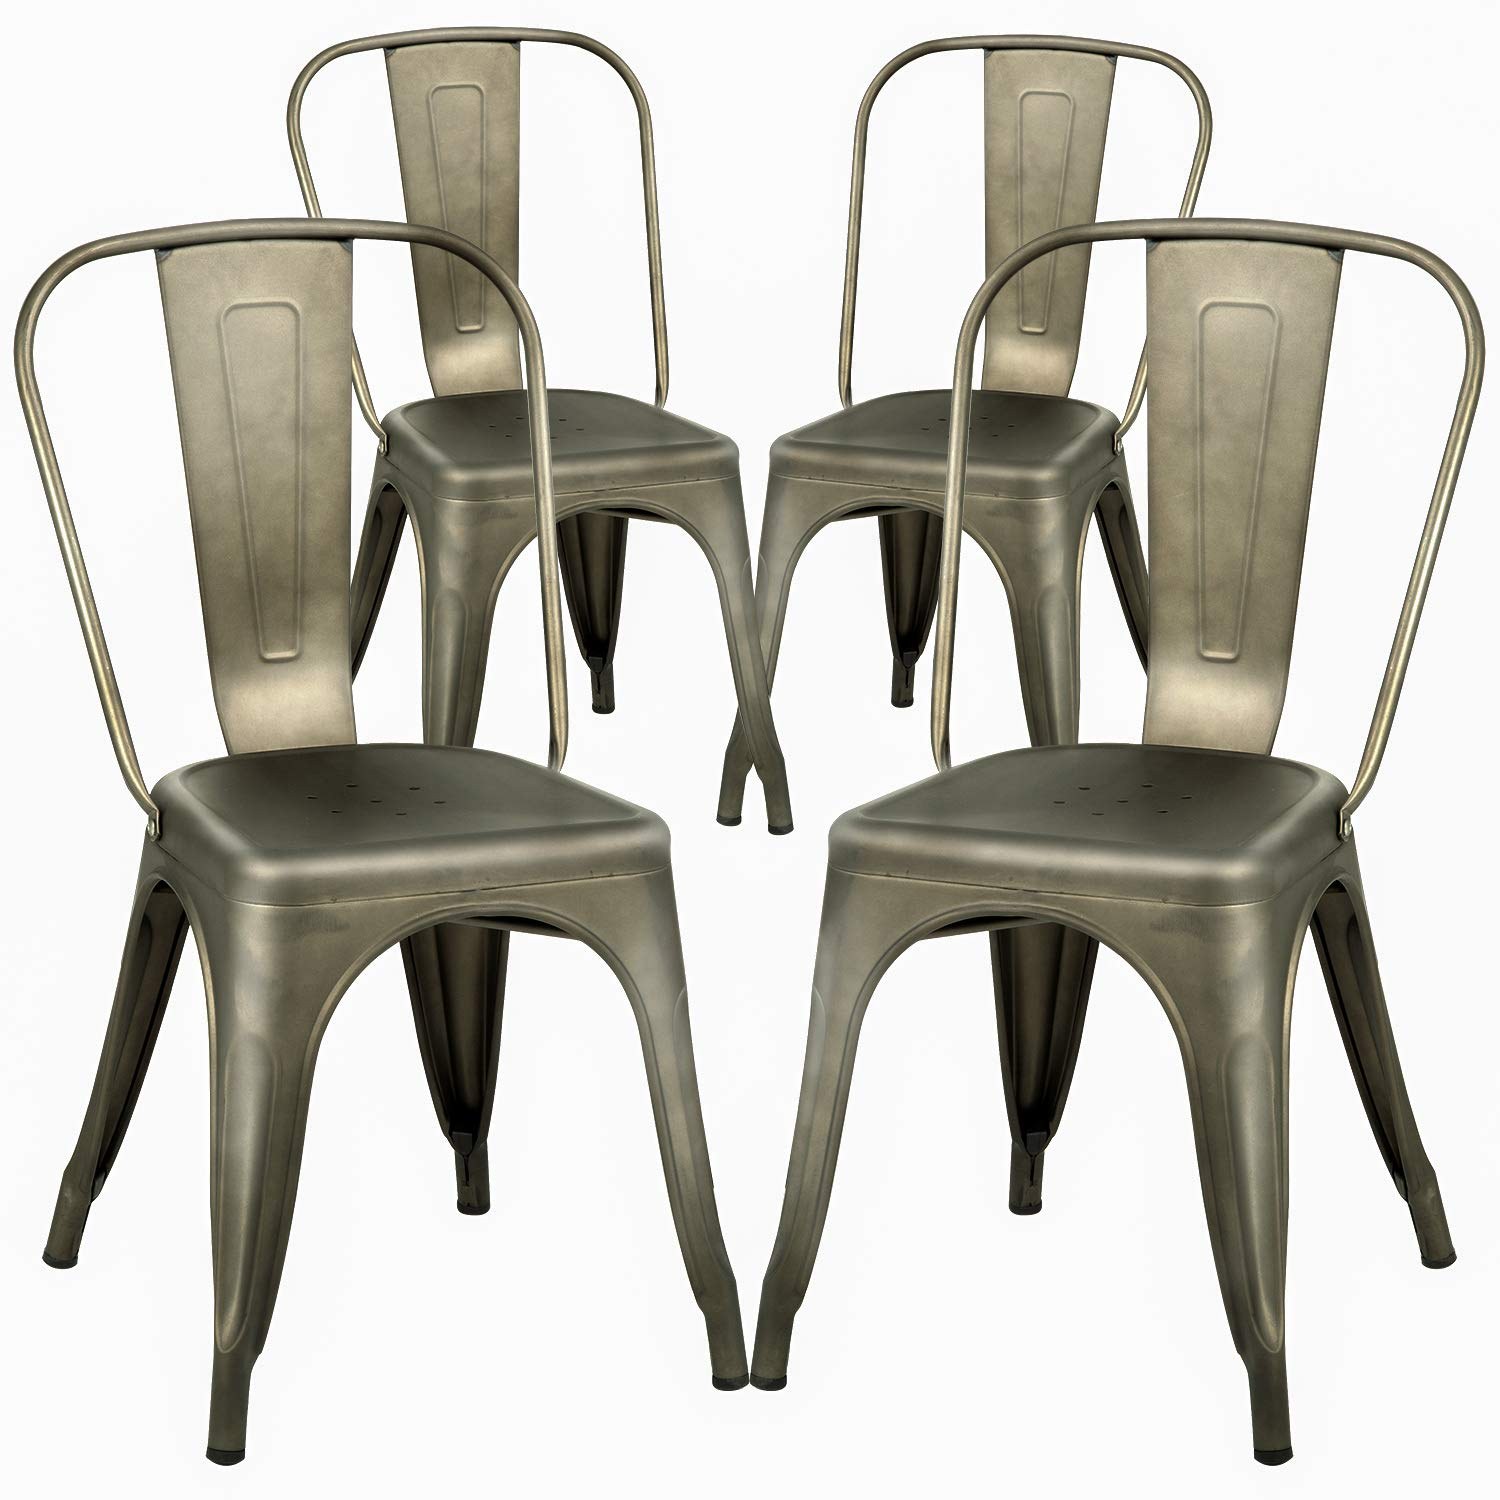 FDW Dining Chairs Set of 4 Metal Chairs Patio Chair Dining Room Kitchen Chair 18 Inches Seat Height Tolix Restaurant Chairs Trattoria Metal Indoor Outdoor Chairs Bar Stackable Chair by FDW